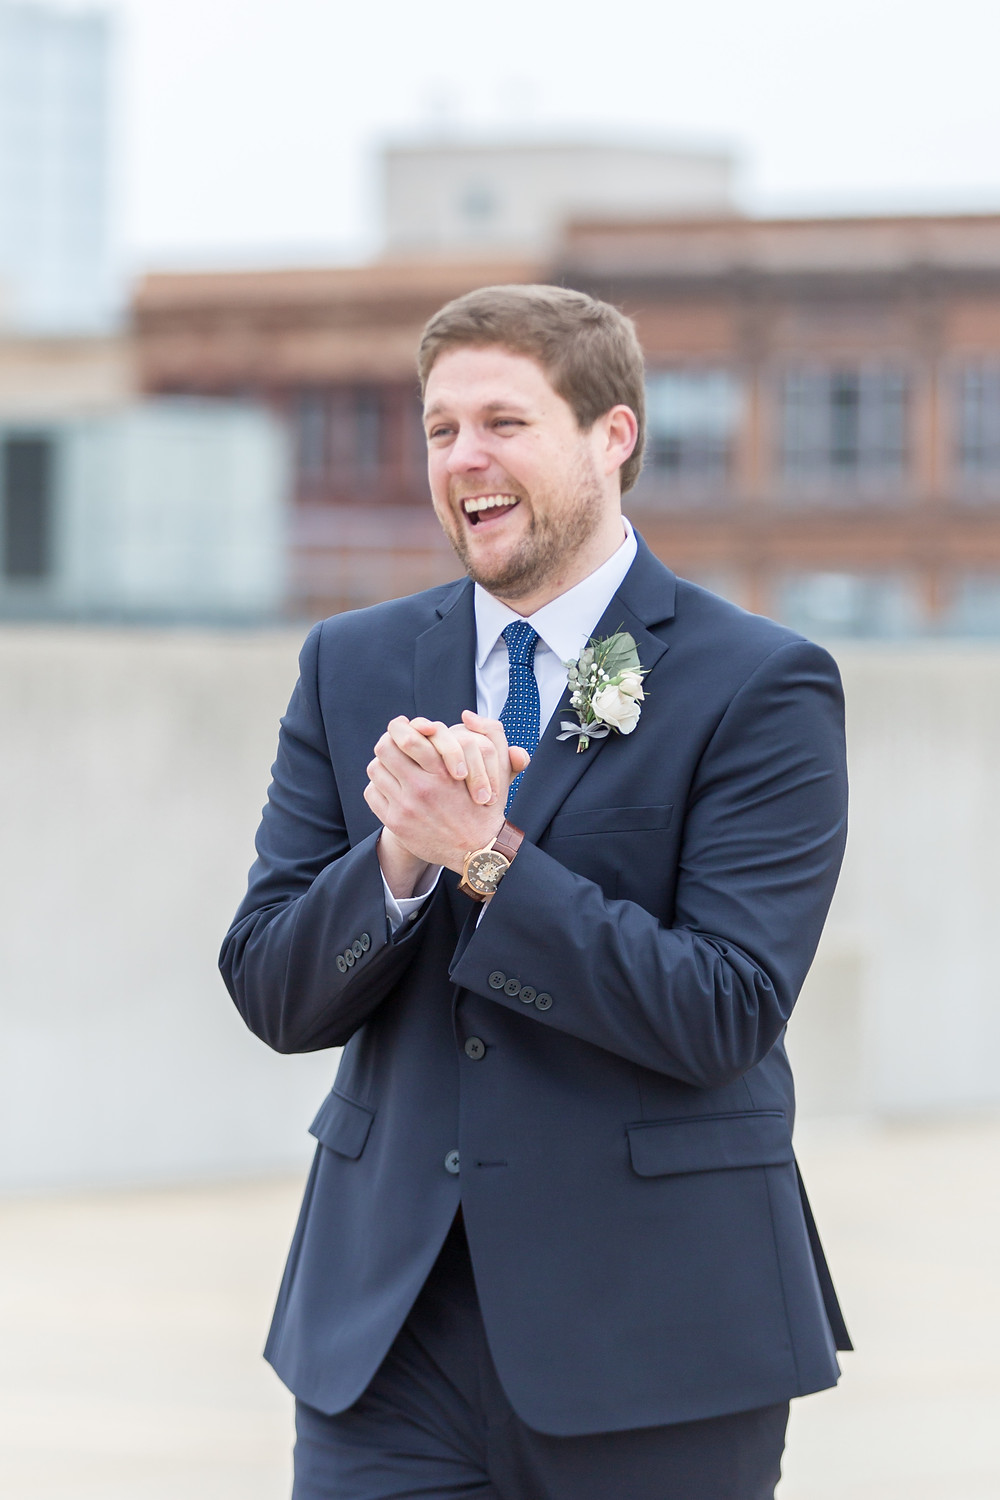 """Erik, the groom, overjoyed upon seeing his bride at their """"first look"""" on their wedding day. Photo by Lottie Lillian."""